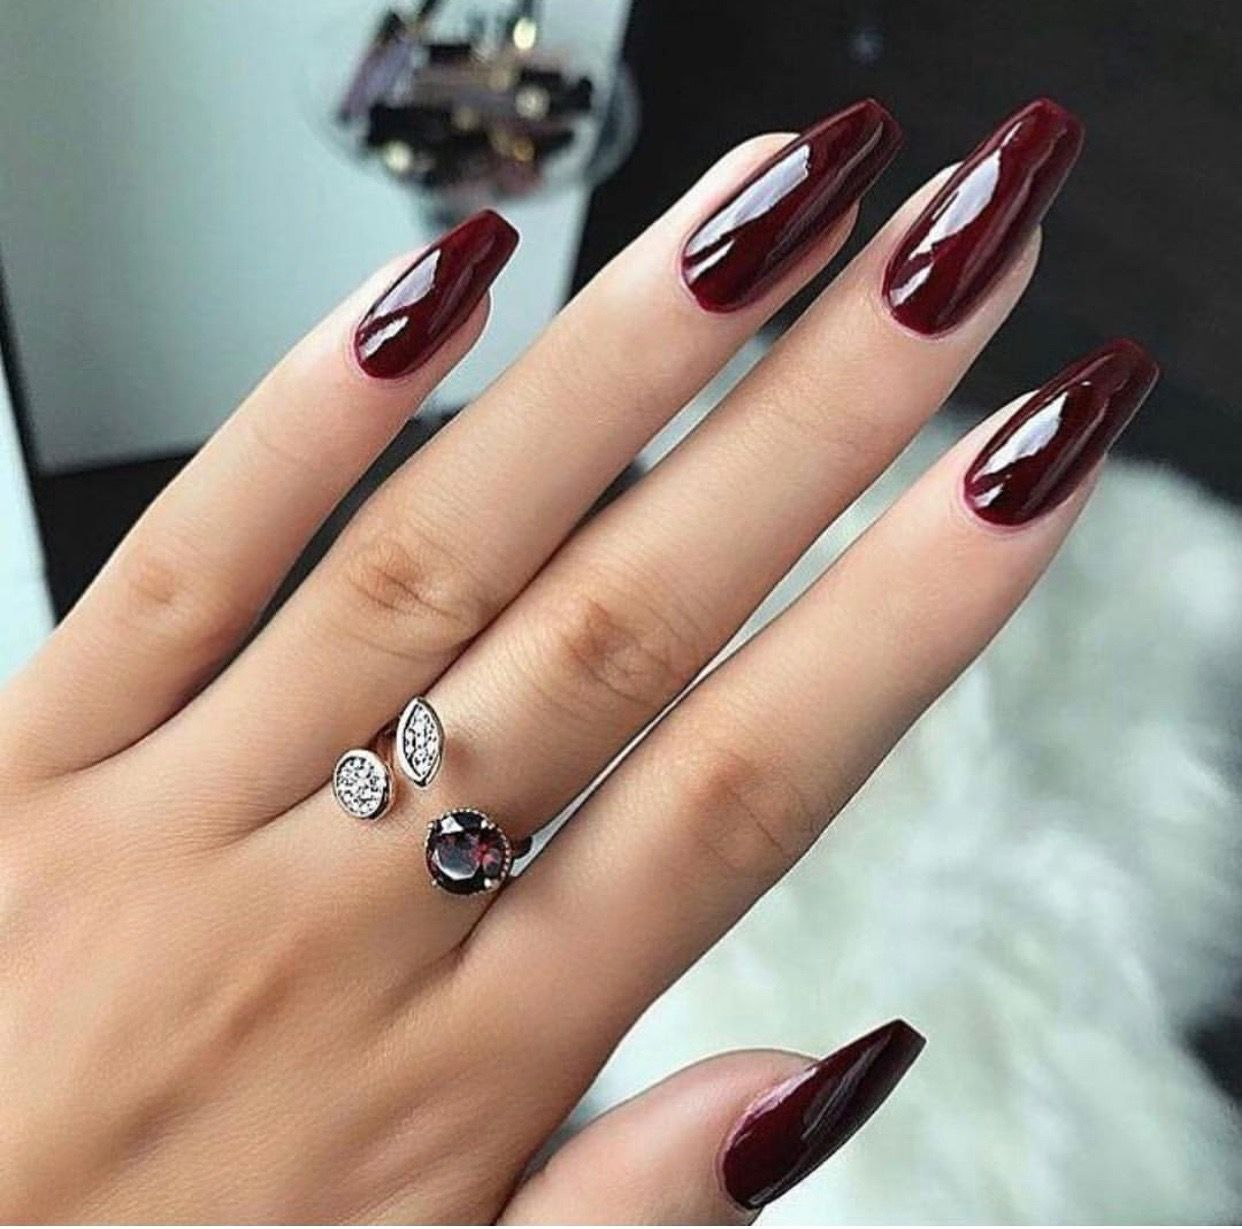 This Is My Go To Fall Color Just Around The Corner Long Acrylic Nail Designs Narrow Round Shape Burgundy Nails Long Acrylic Nails Long Acrylic Nail Designs